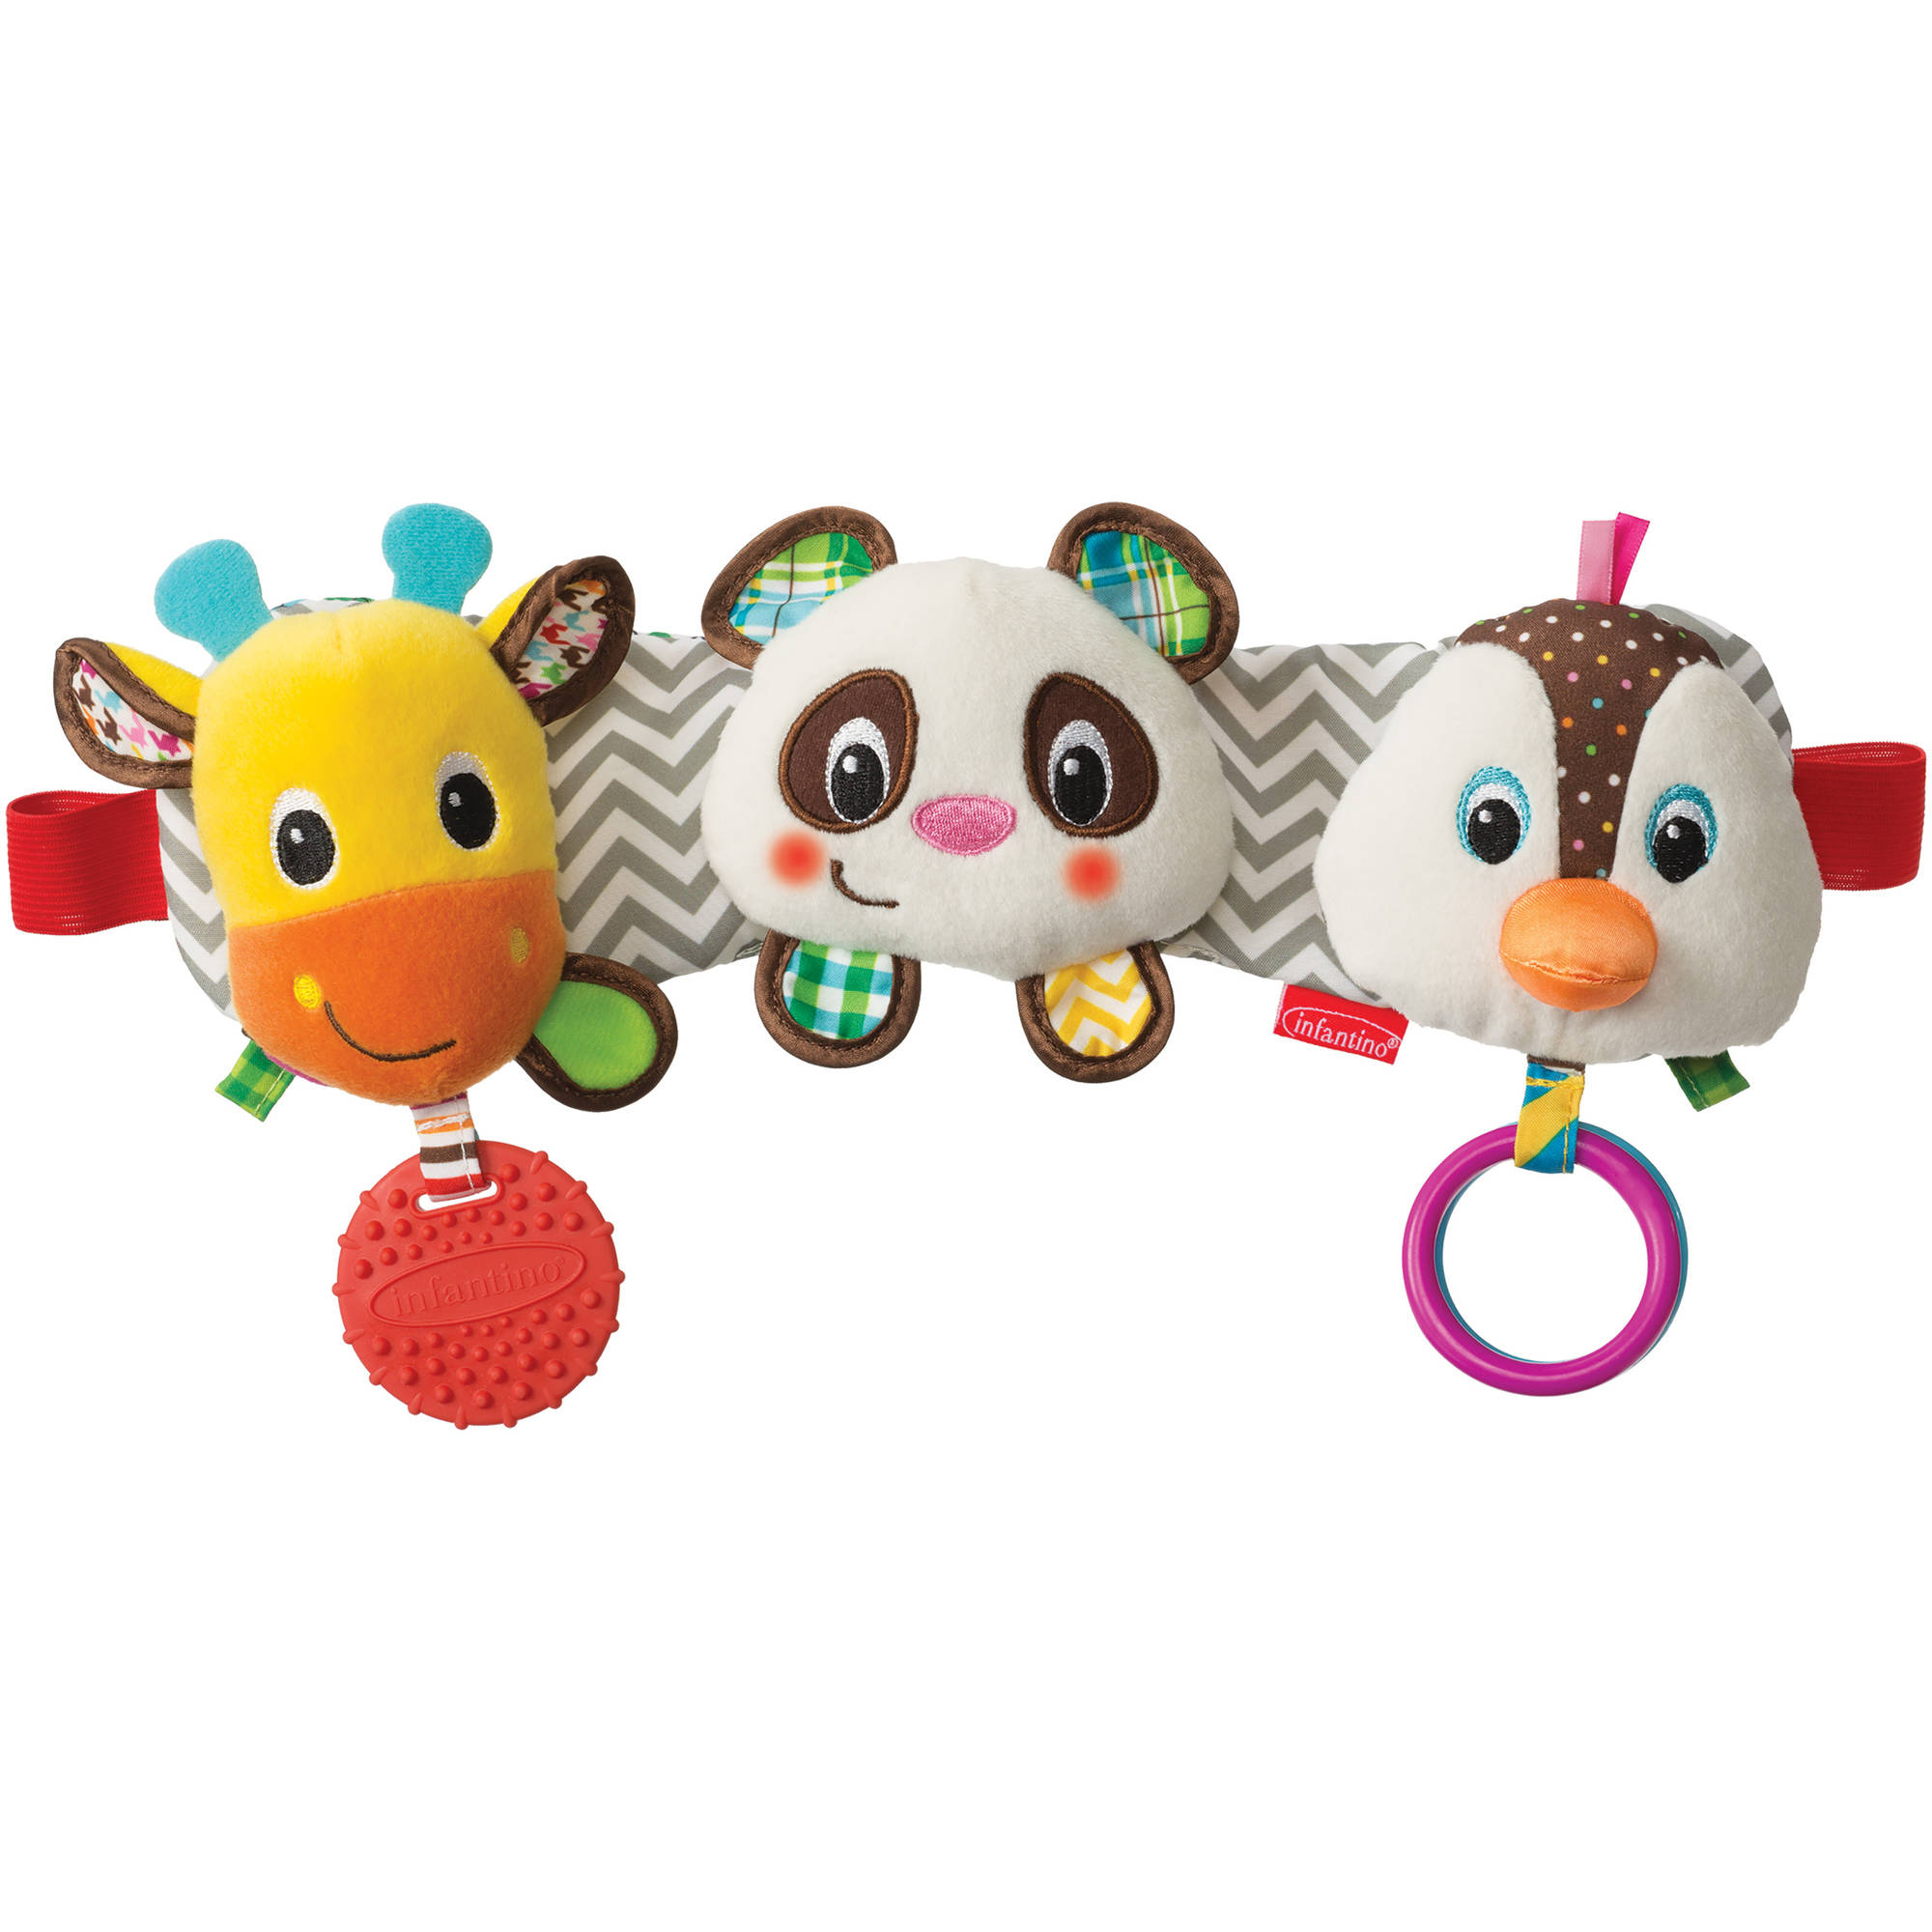 Infantino See Play Go Stretch & Play Musical Travel Trio